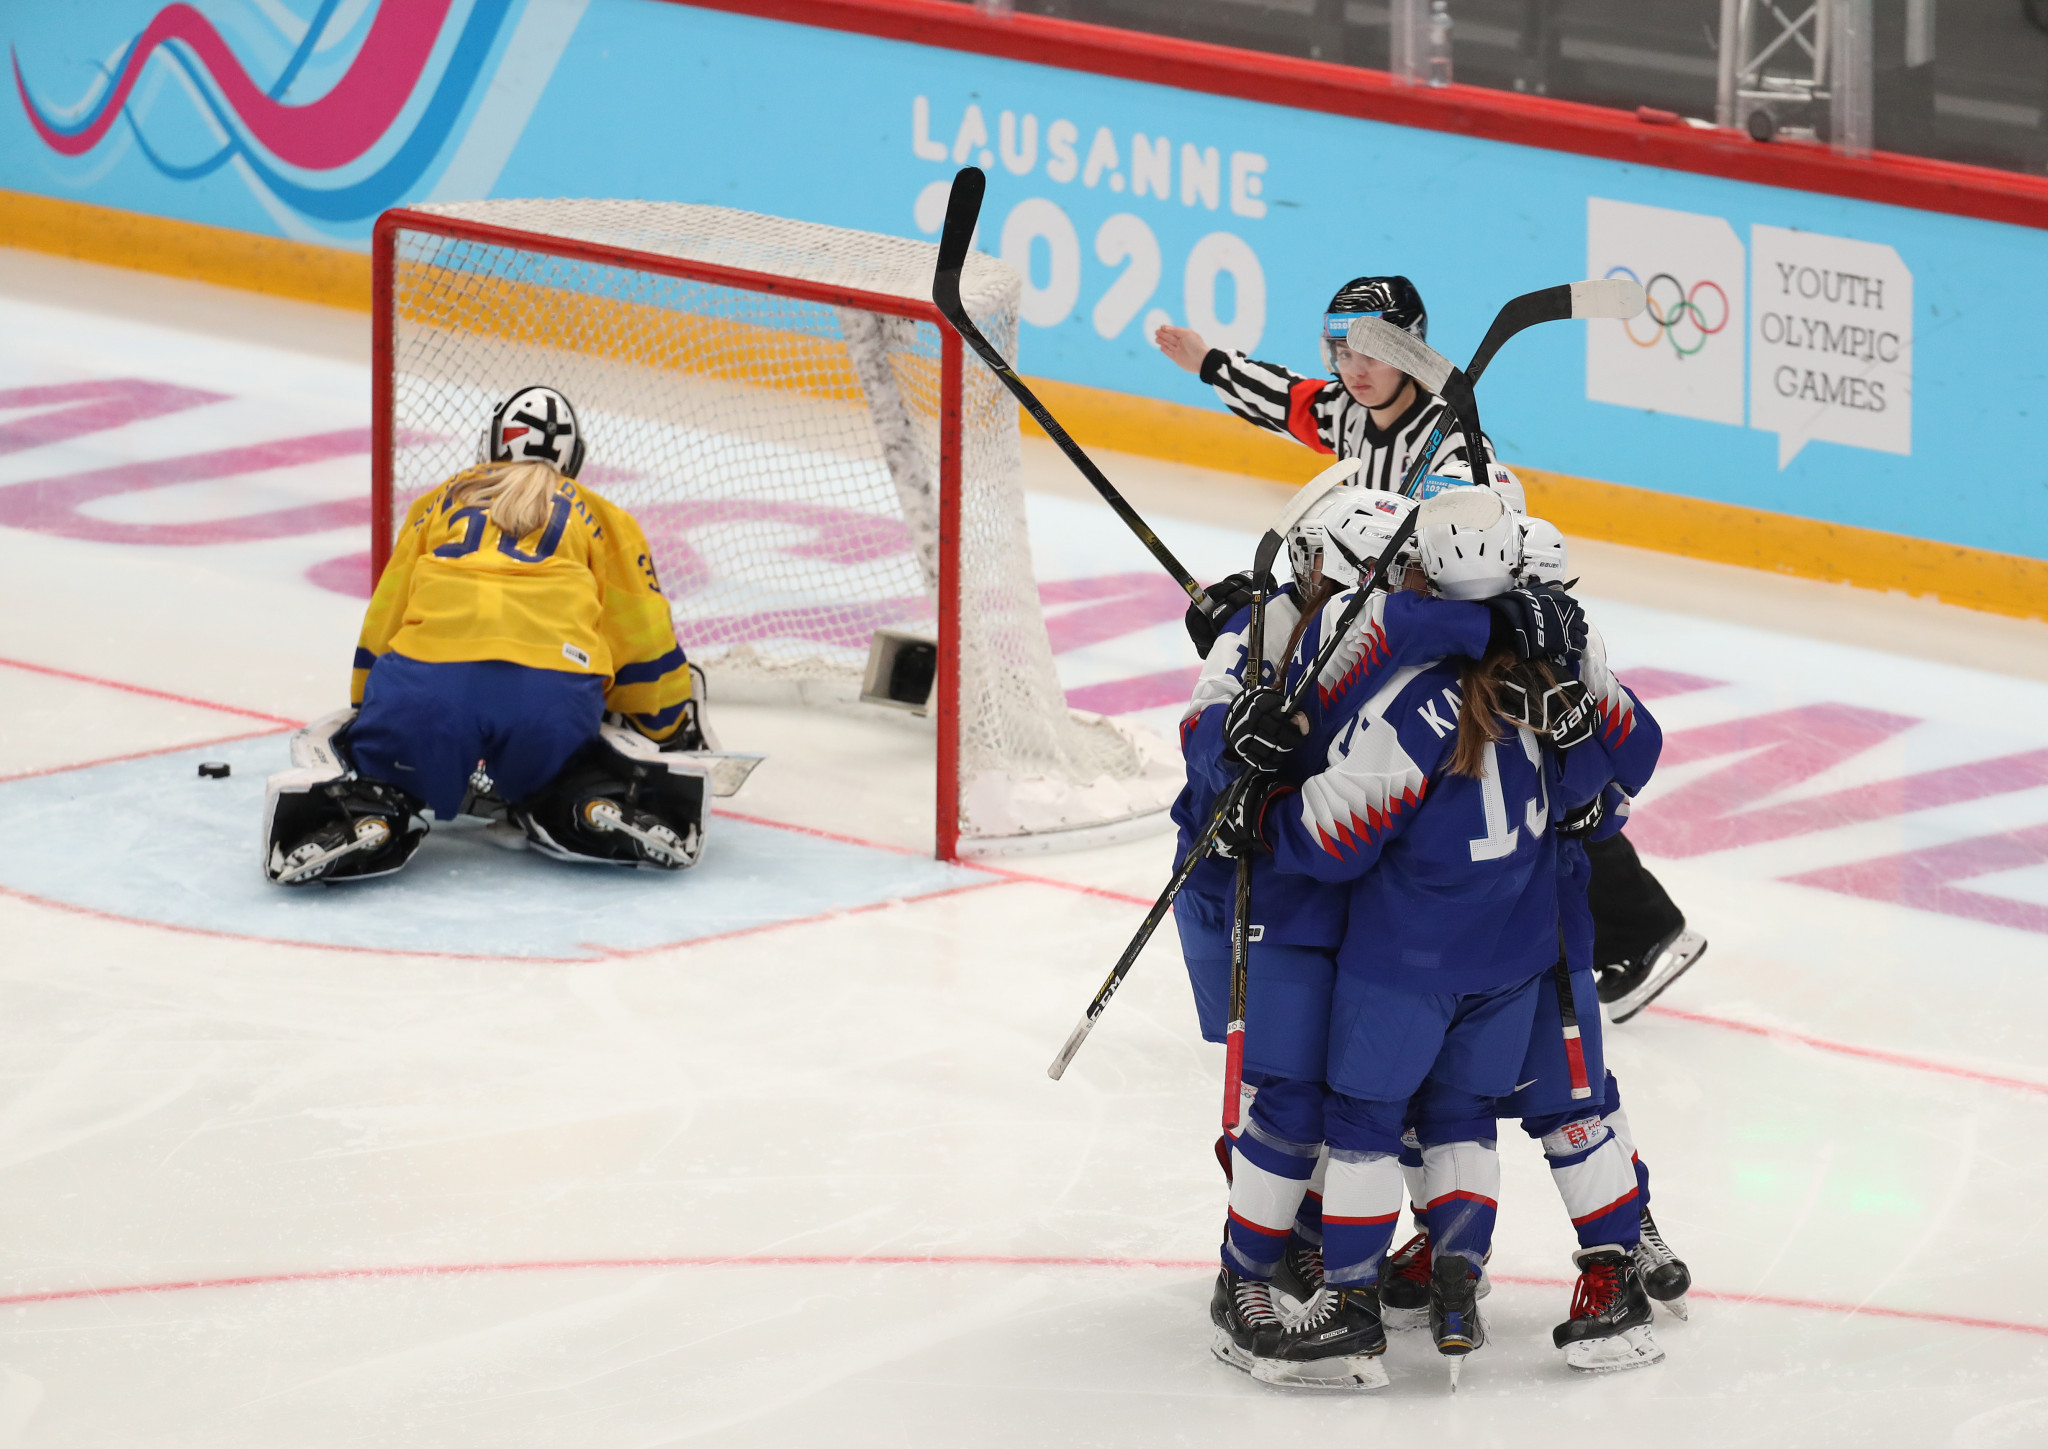 The preliminary stages of ice hockey competition began ©Getty Images